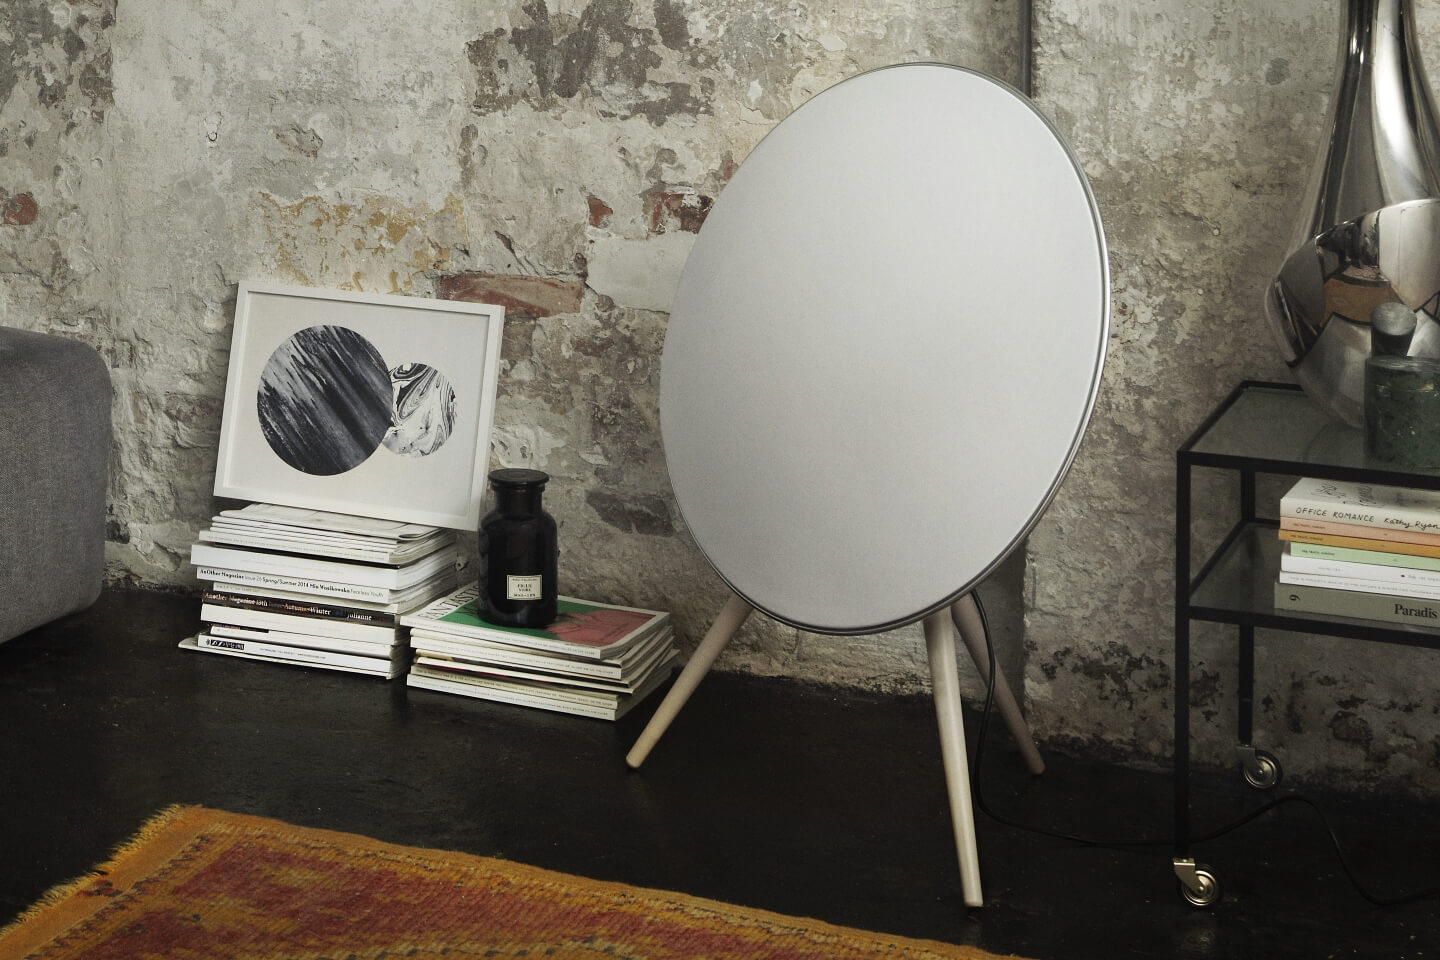 BeoPlay A9 with room adaption